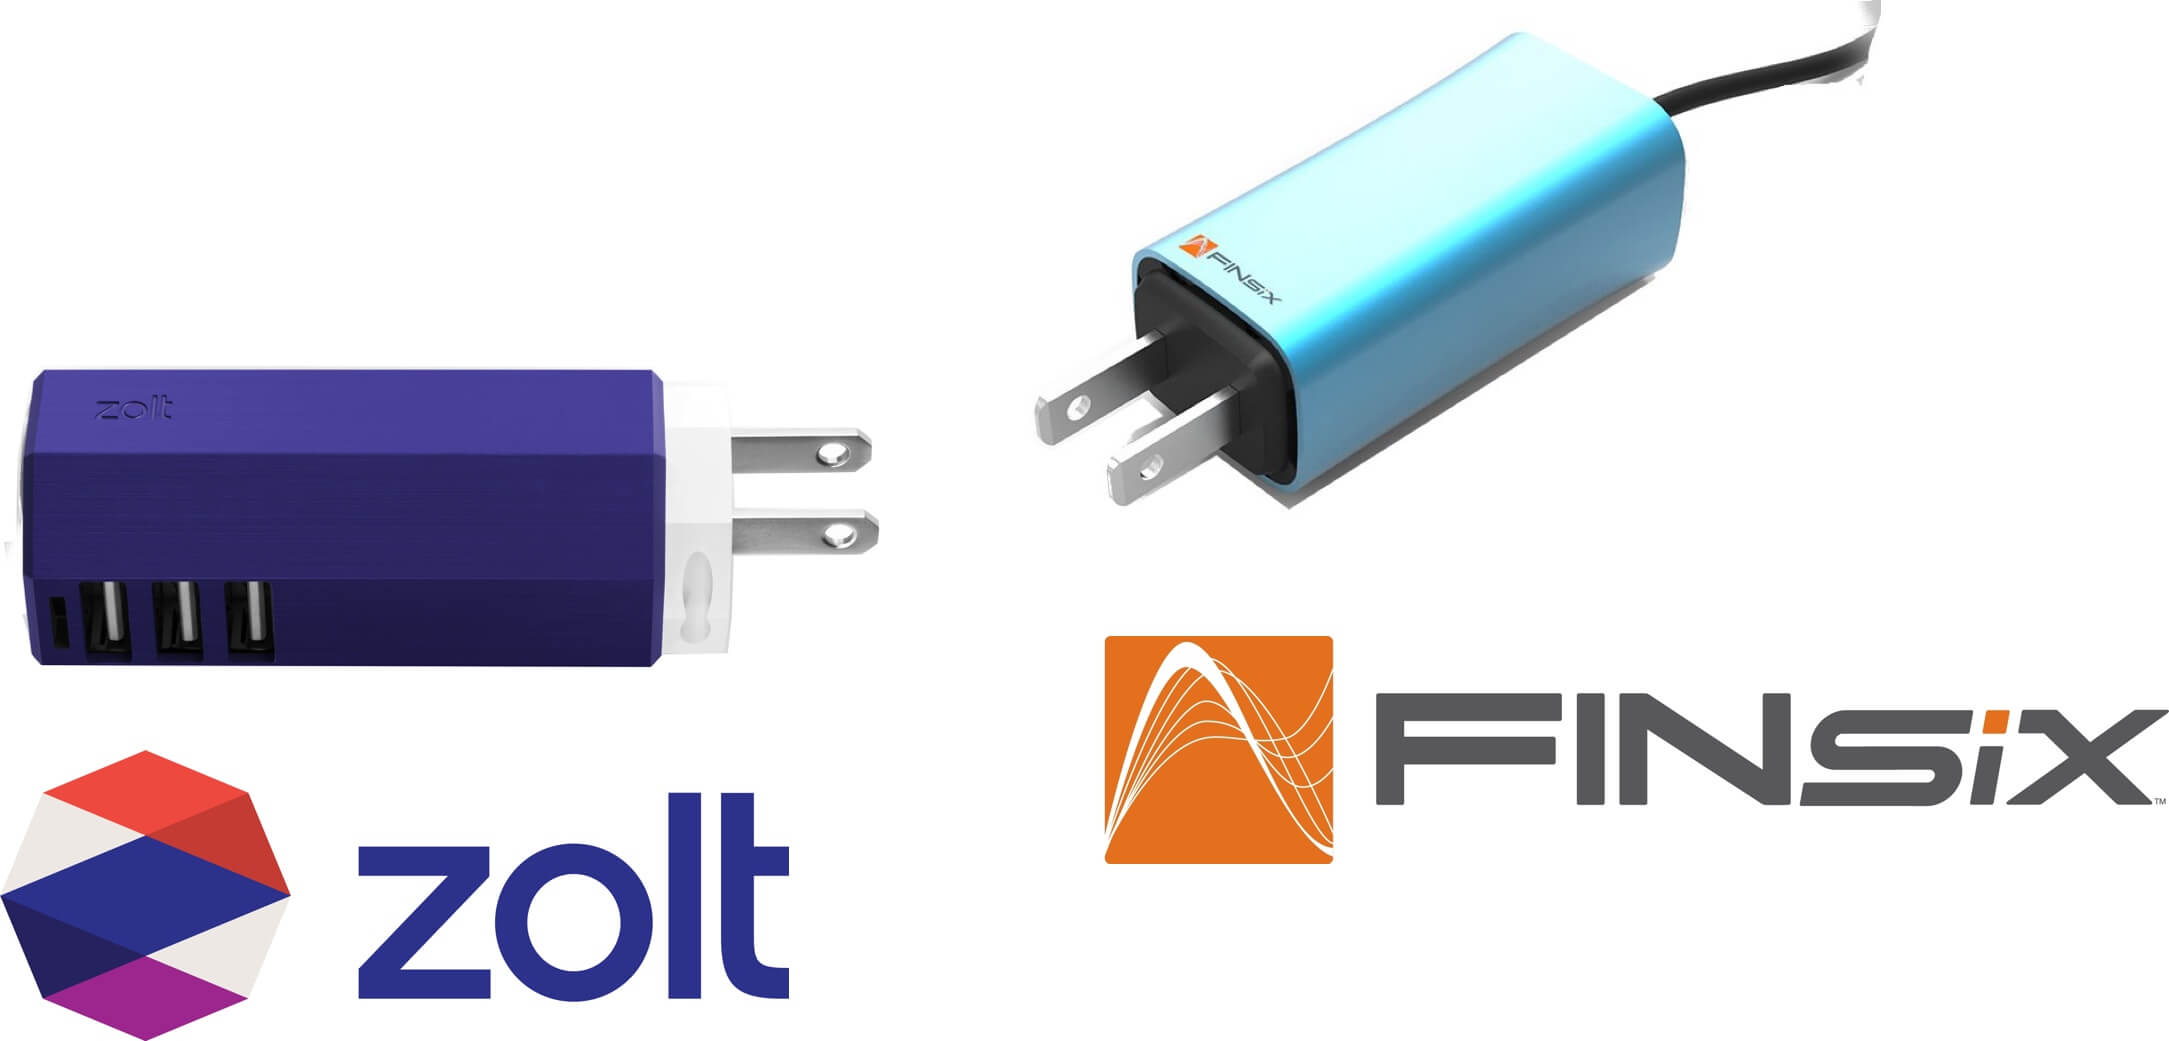 Zolt and finsix dart Gallium nitride based power supplies